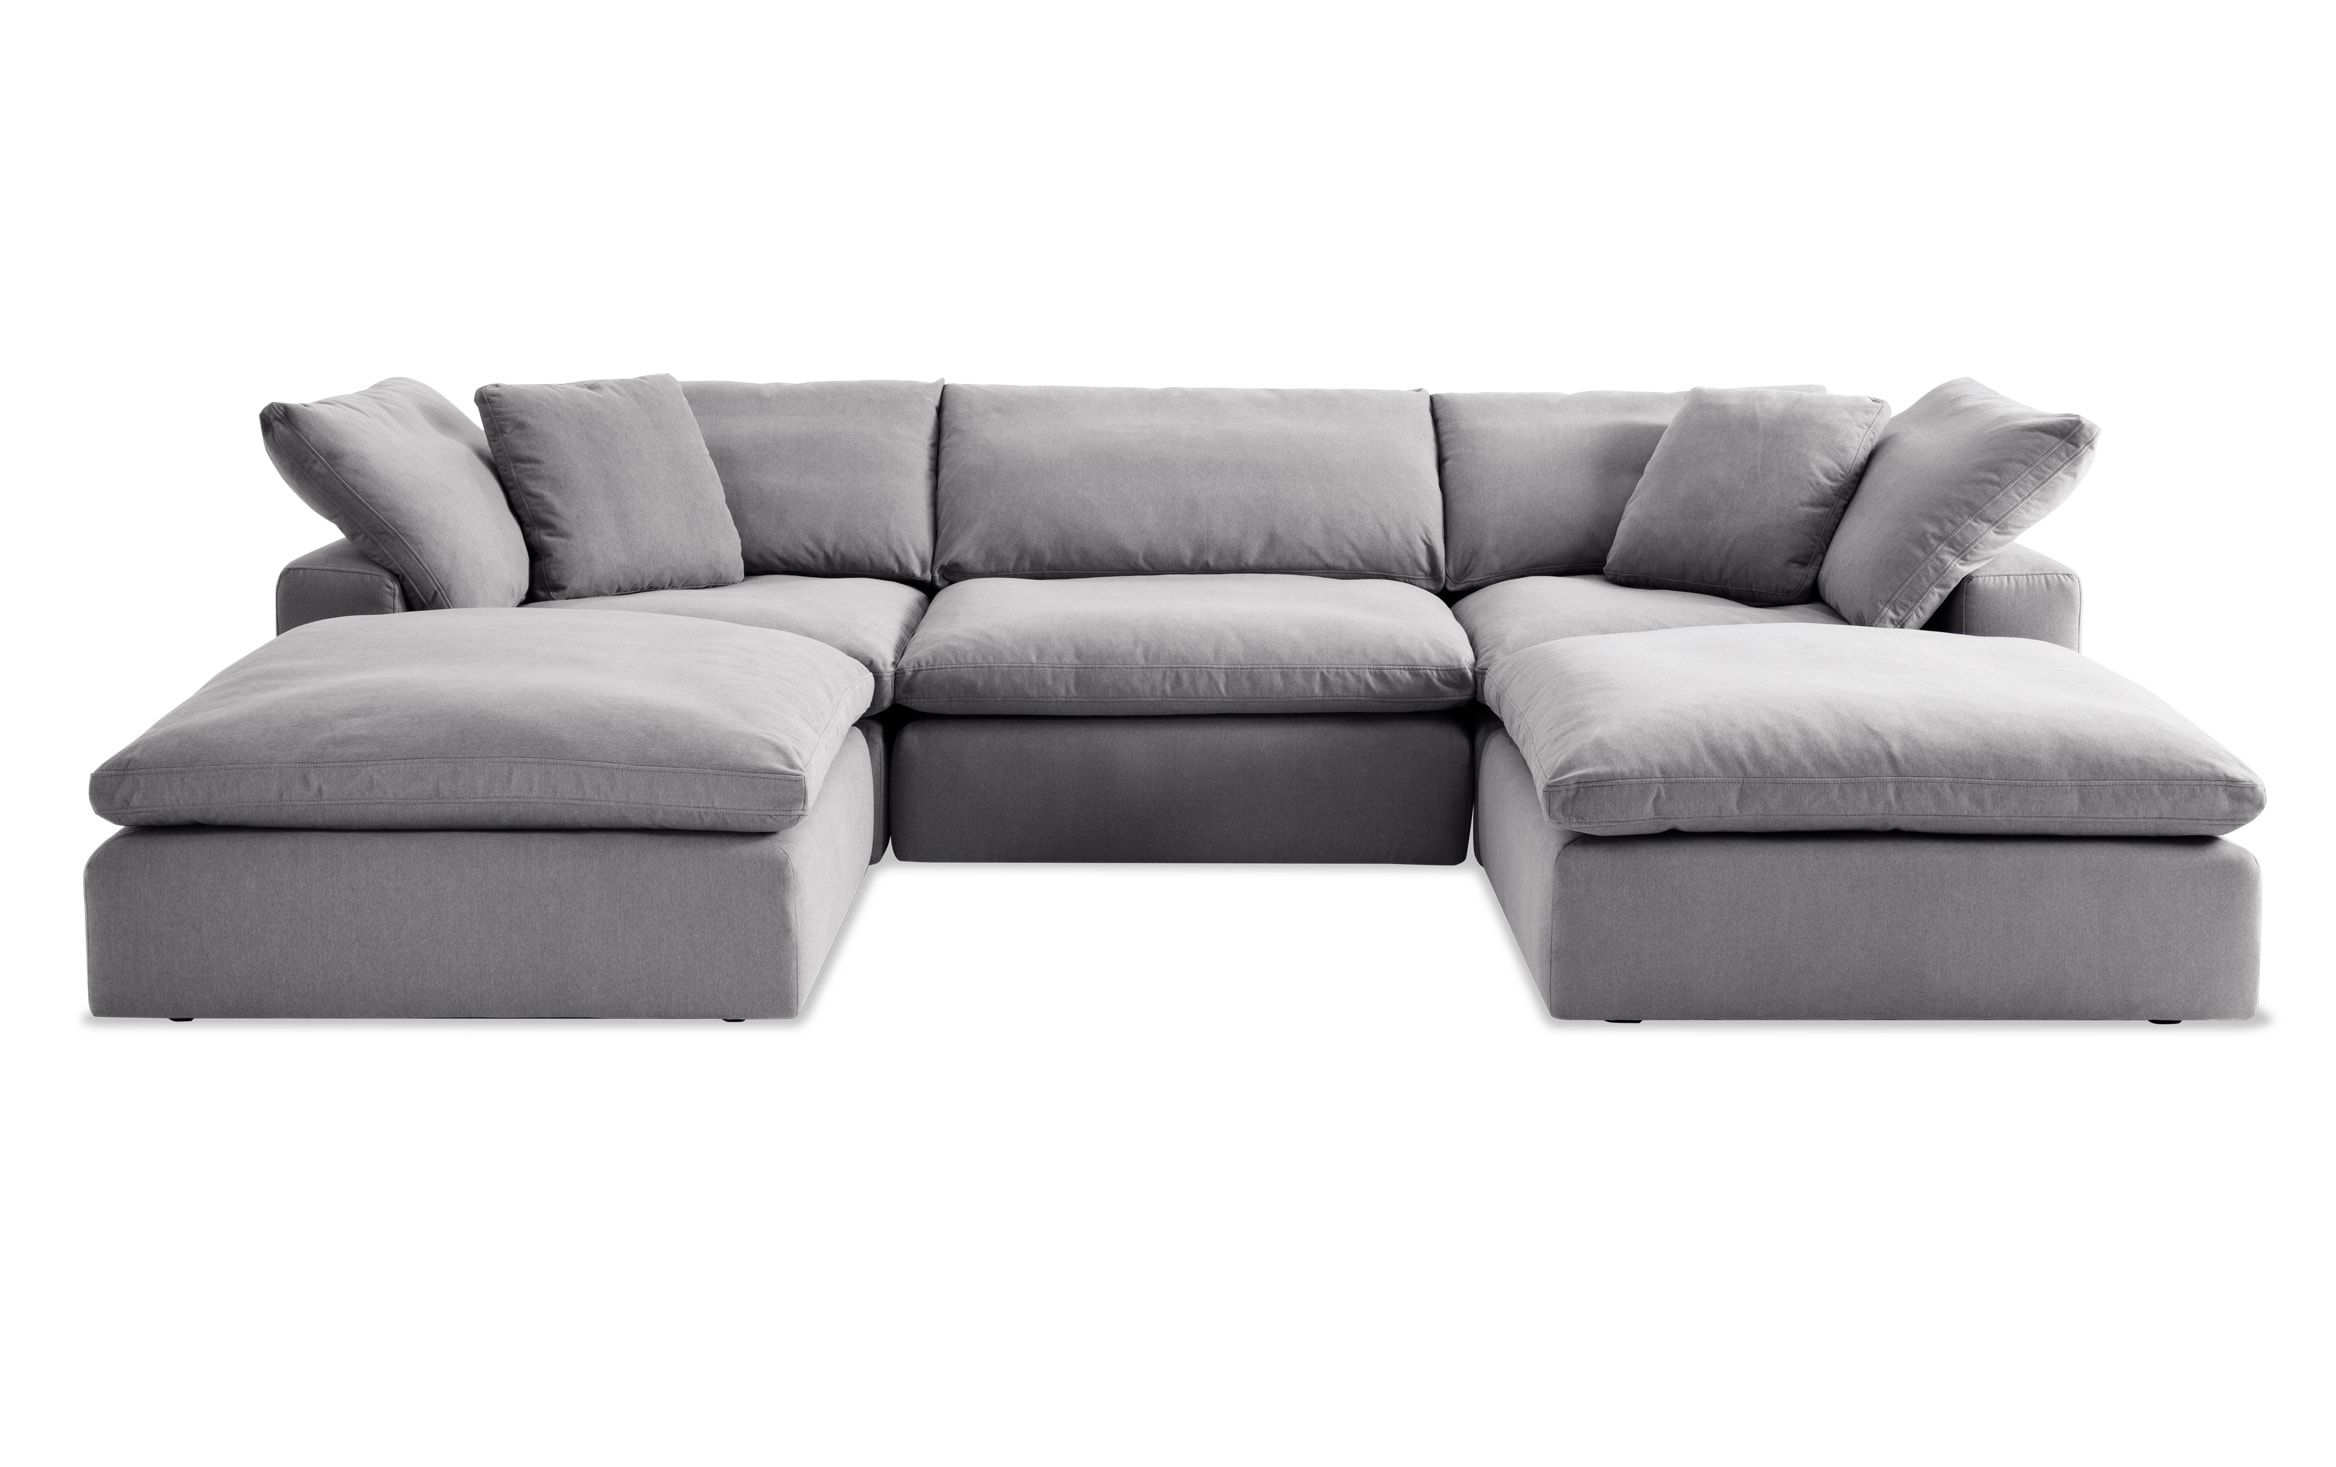 Dream Gray Modular 5 Piece Sectional Sectional Grey Sectional